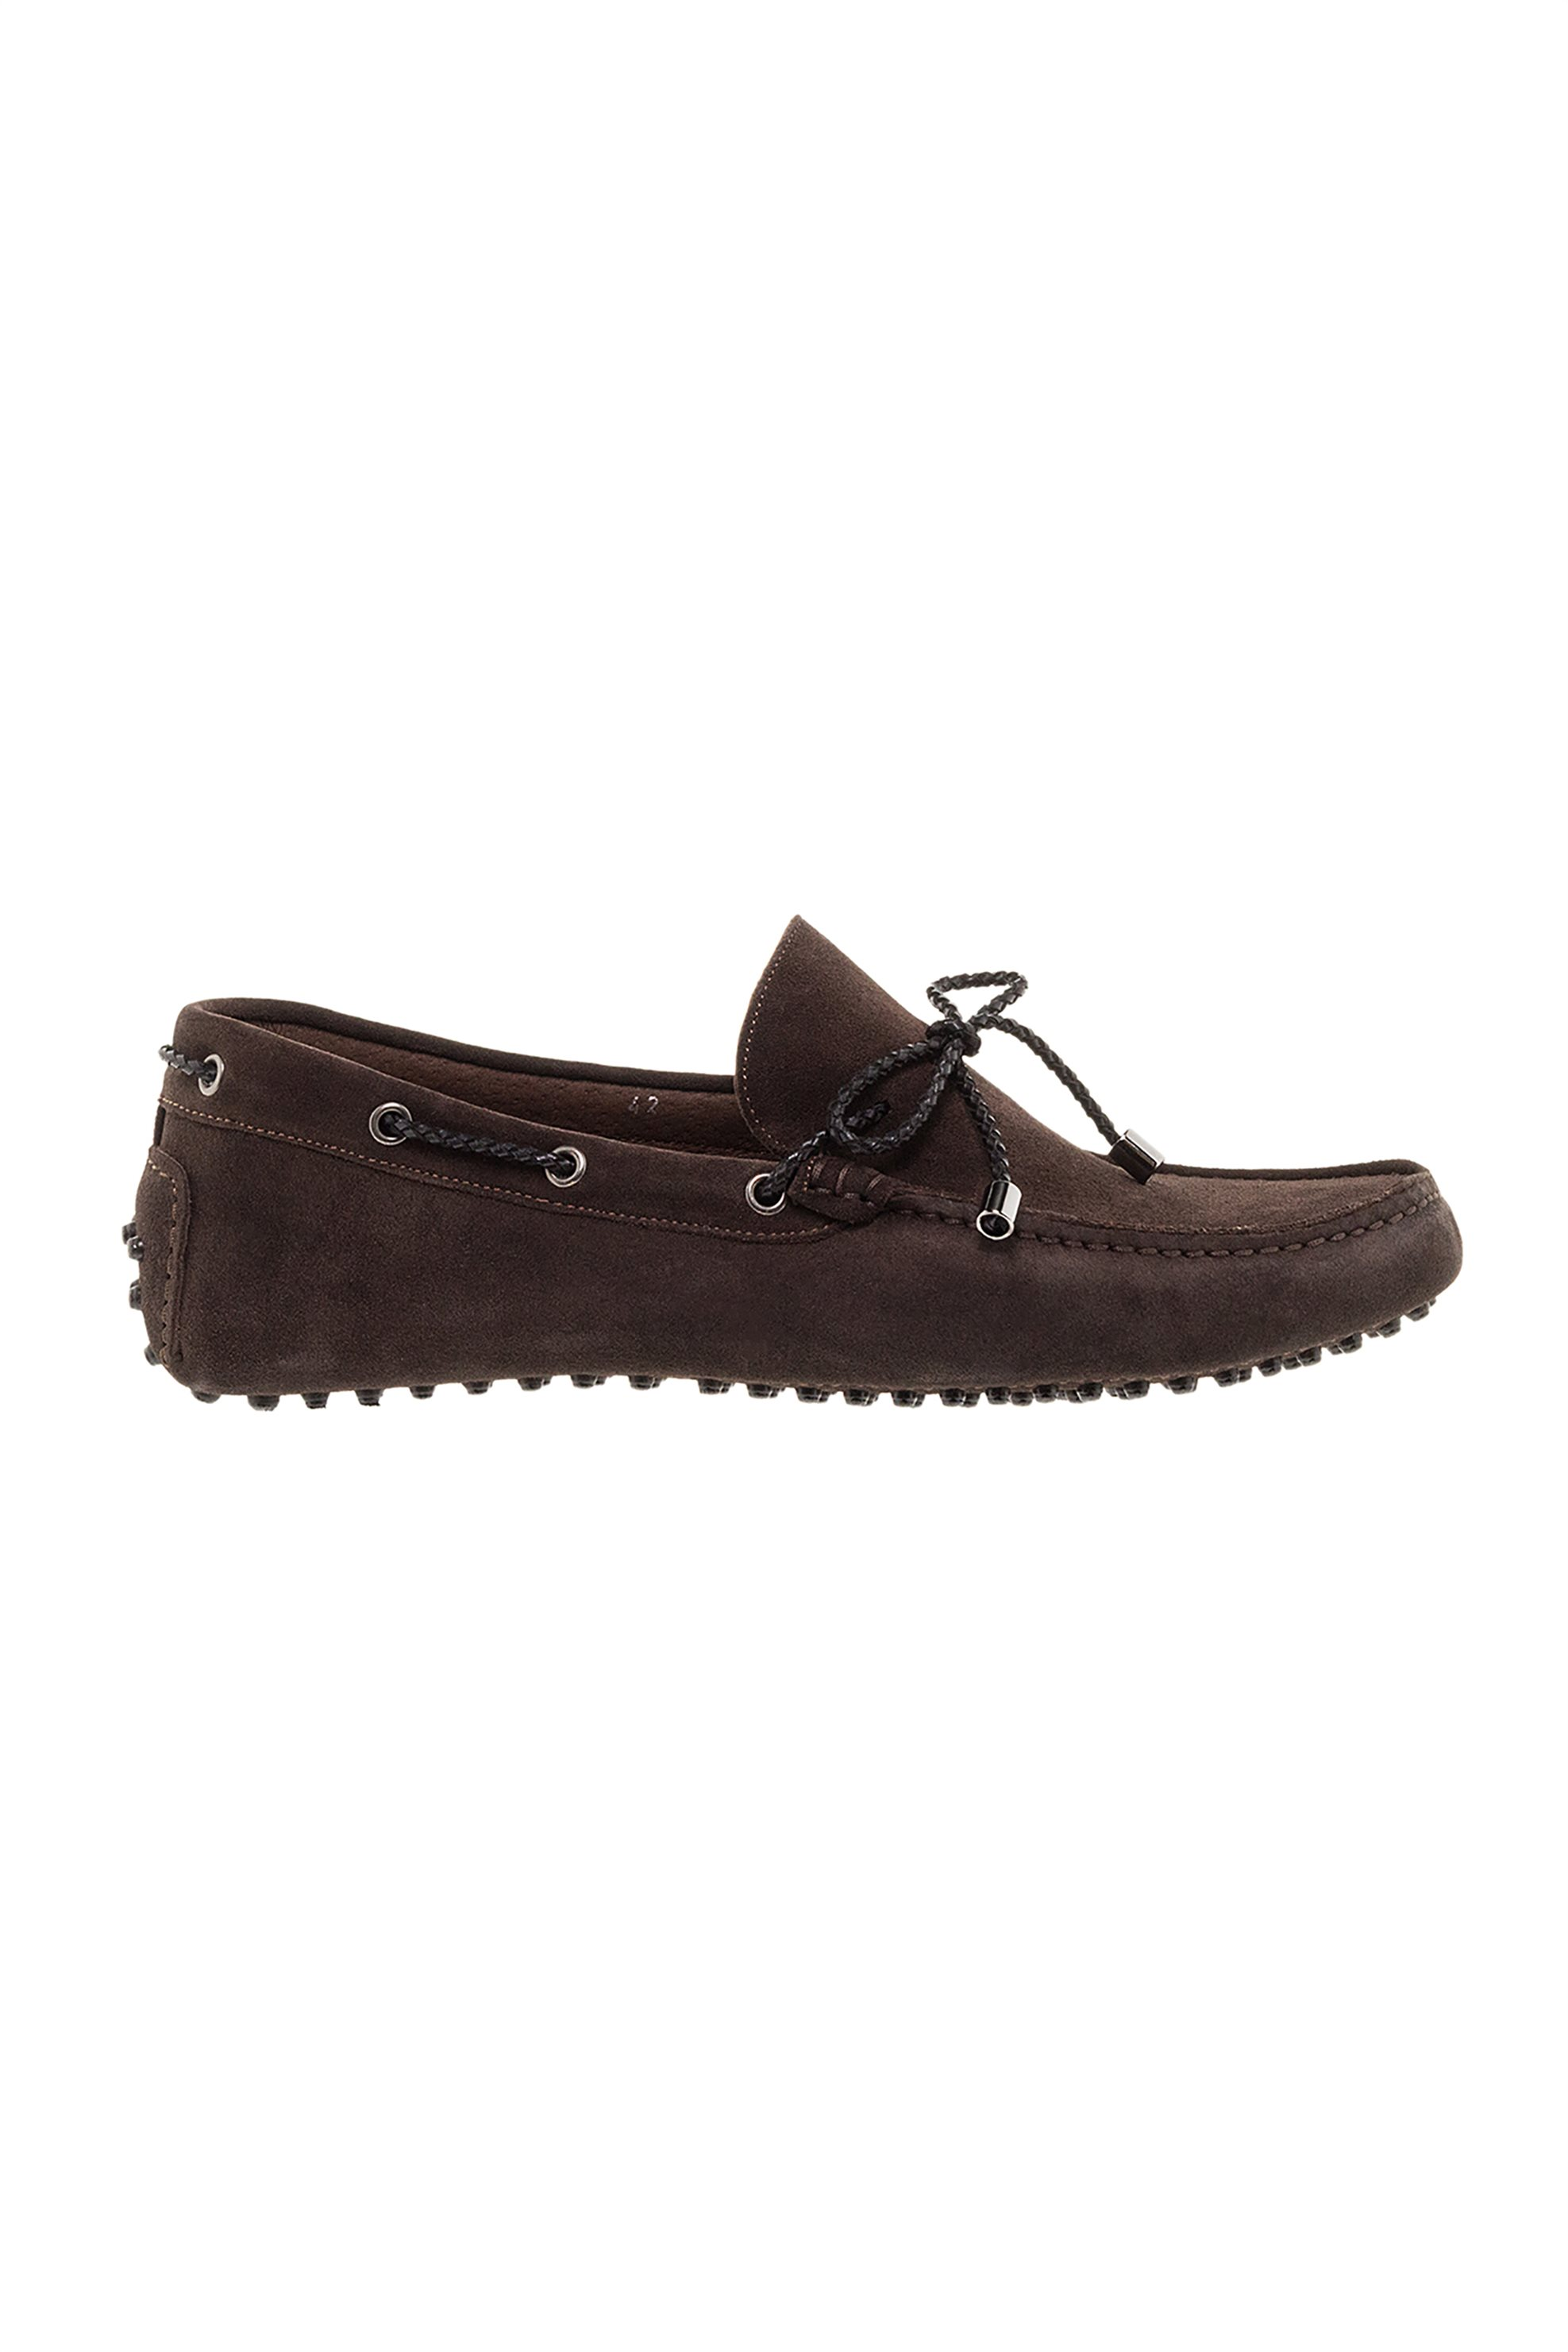 4cc5427ccf2 Παπούτσια νούμερο 44- Roe Shoes Collection